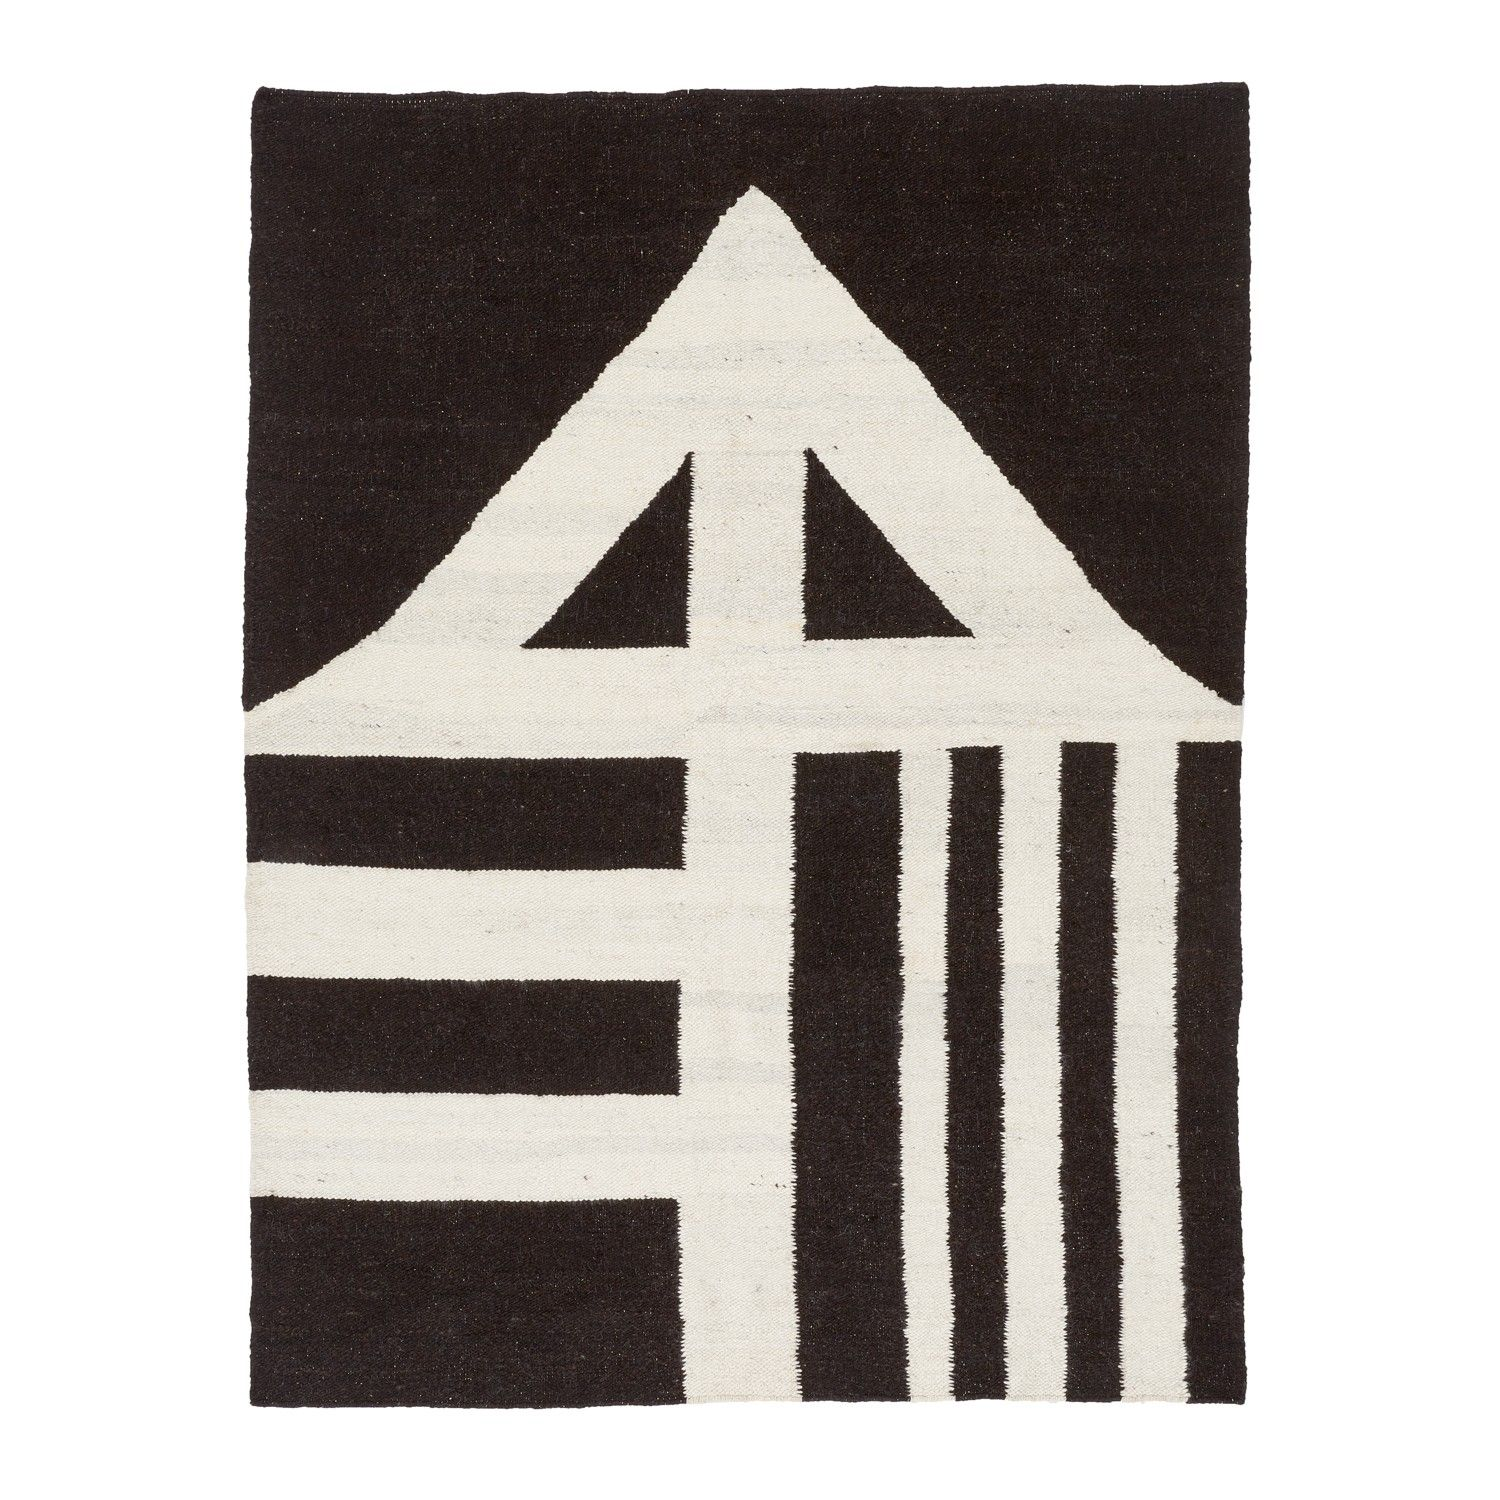 """Handwoven in South Africa, the Masana rugs feature the geometric patterns of the indigenous Ndebele tribe. From the basic symbol for """"water"""" to the decorative patterns of tribal tents, these exotic markings reflect the words, drawings, and general beliefs of the Ndebele culture and can be found nowhere else in the world. Woven from Karakul sheep's wool (known for its durable thickness), these one-of-a-kind pieces are created by women artisans of the local Ndebele and Xhosa tribes, who…"""